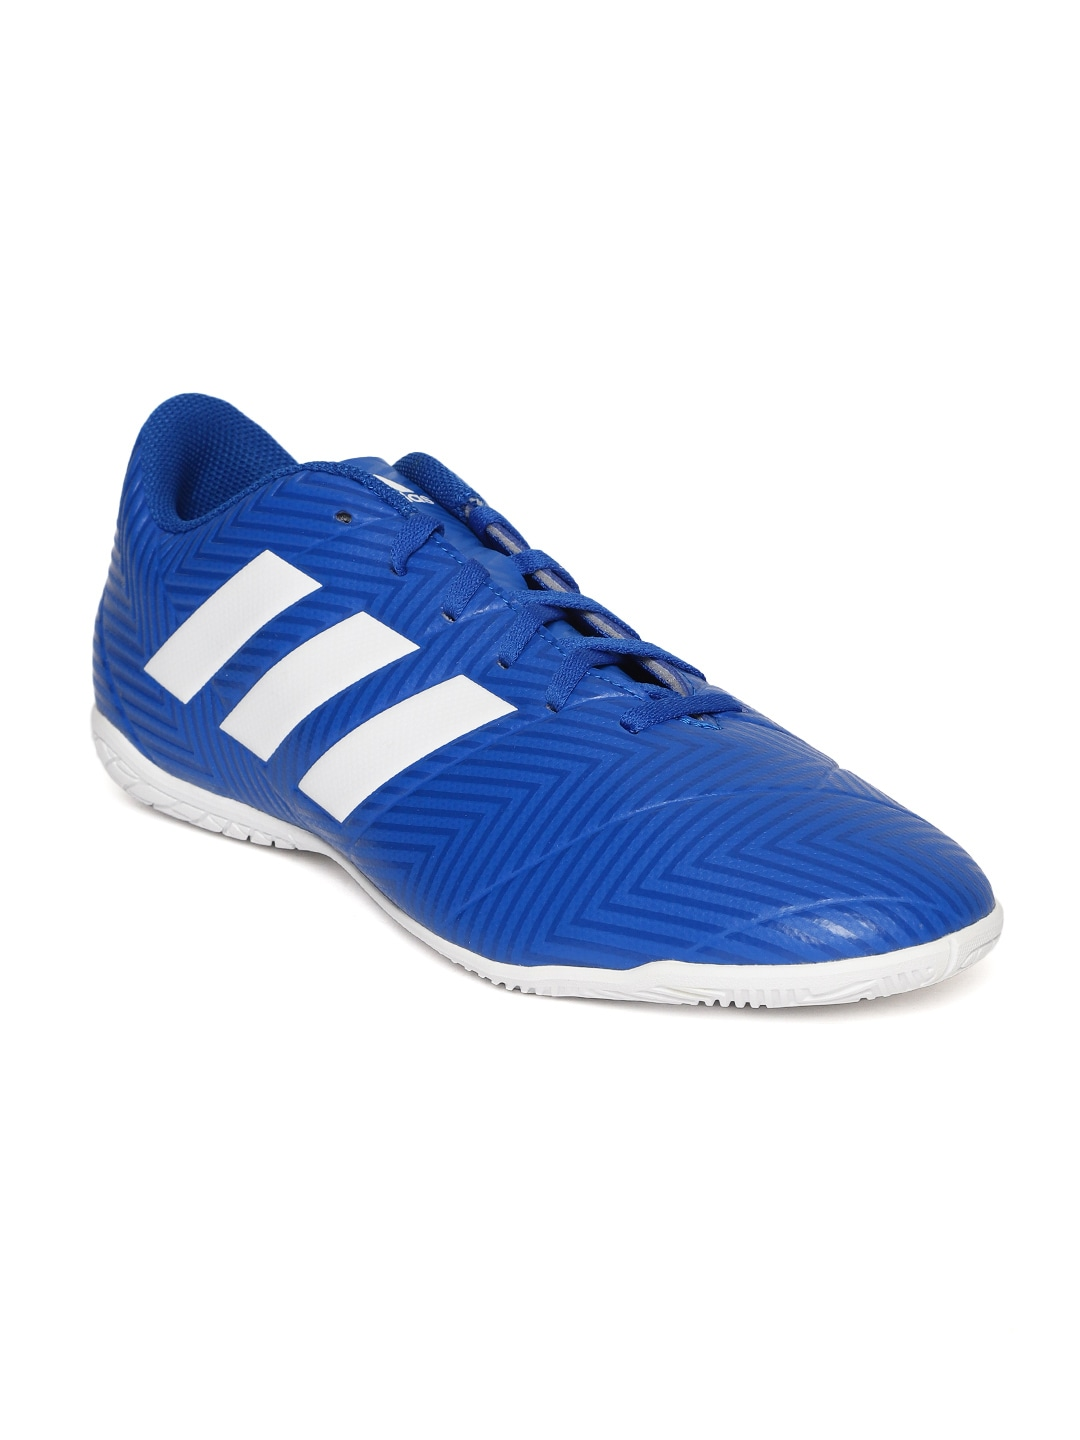 77b4df339d9 Adidas Tango Sports Shoes - Buy Adidas Tango Sports Shoes online in India